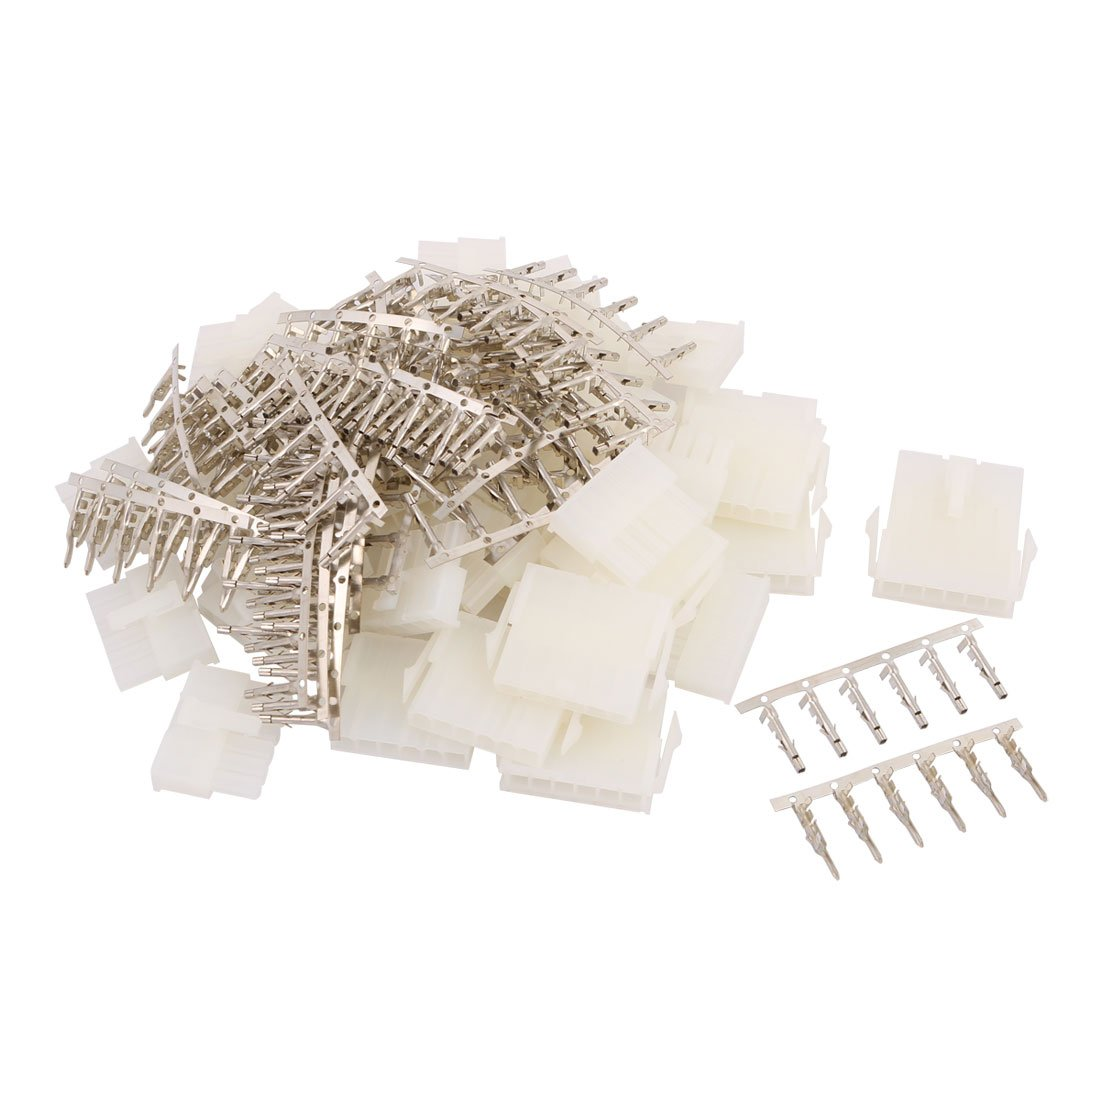 uxcell 20 Pair White Plastic 6 Pin Male + Female 4.2mm Pitch + 6 Pin Terminal Car Auto PC PSU ATX Connector